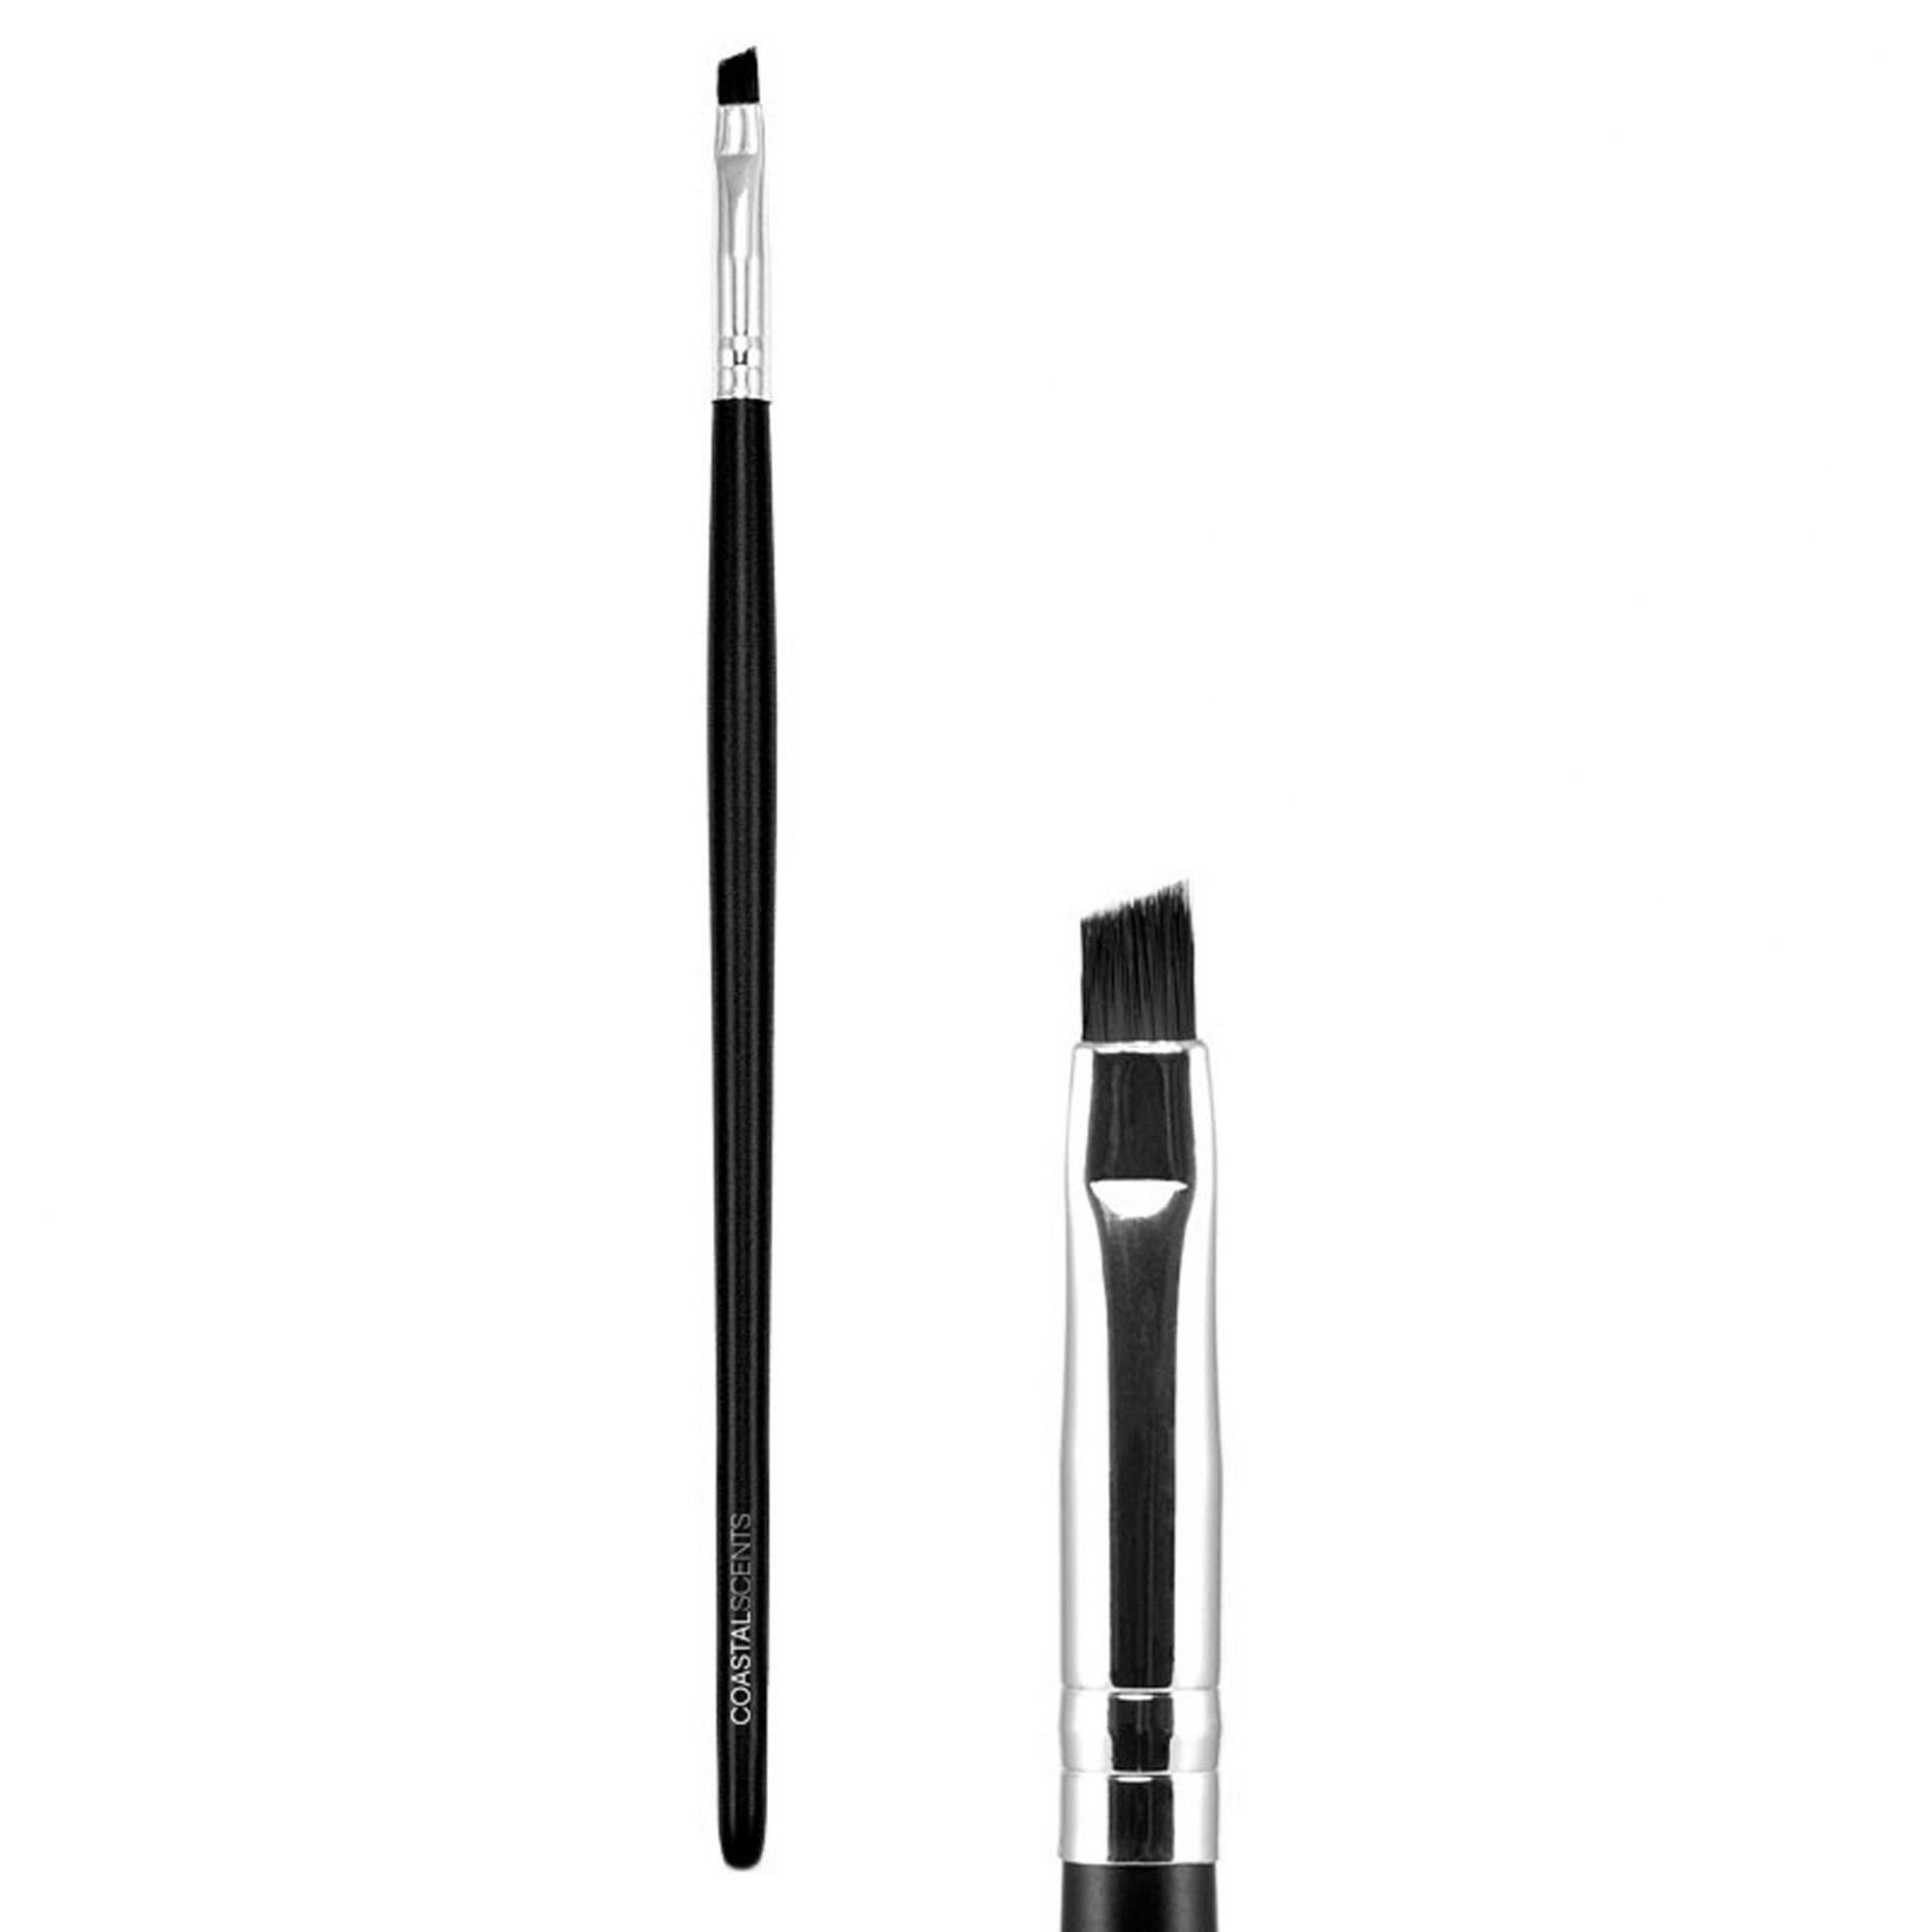 S17 - ANGLED LINER BRUSH SMALL | COASTAL SCENTS